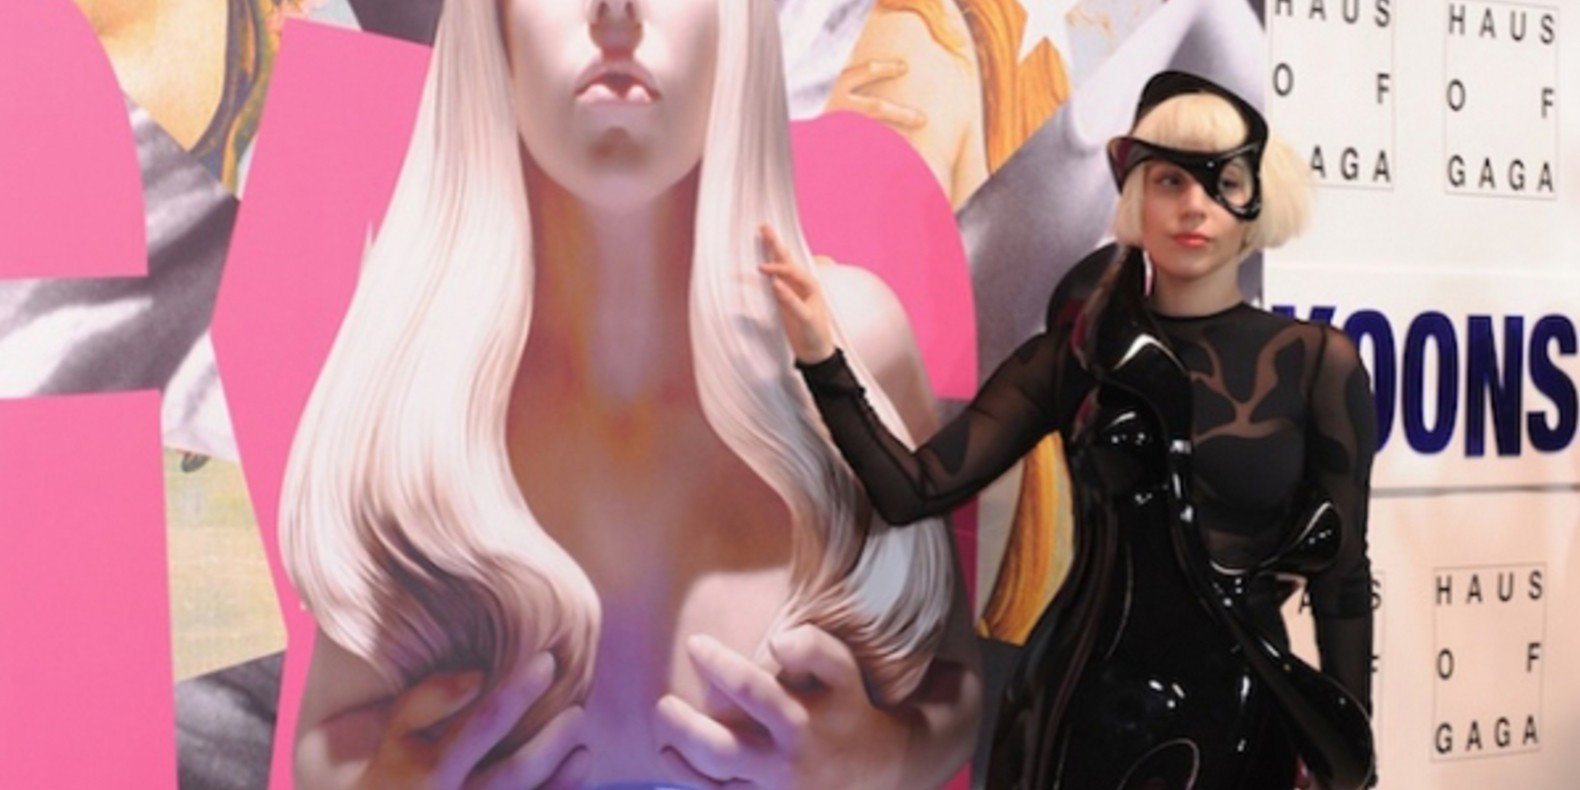 http://fichier3d.fr/wp-content/uploads/2013/12/cults-lady-gaga-robe-mode-artpop-materialise-studio-XO-scanning-3D-musique-Art-Rave-fashion-fichier-3d-jeff-koons-scott-eaton-1.jpg